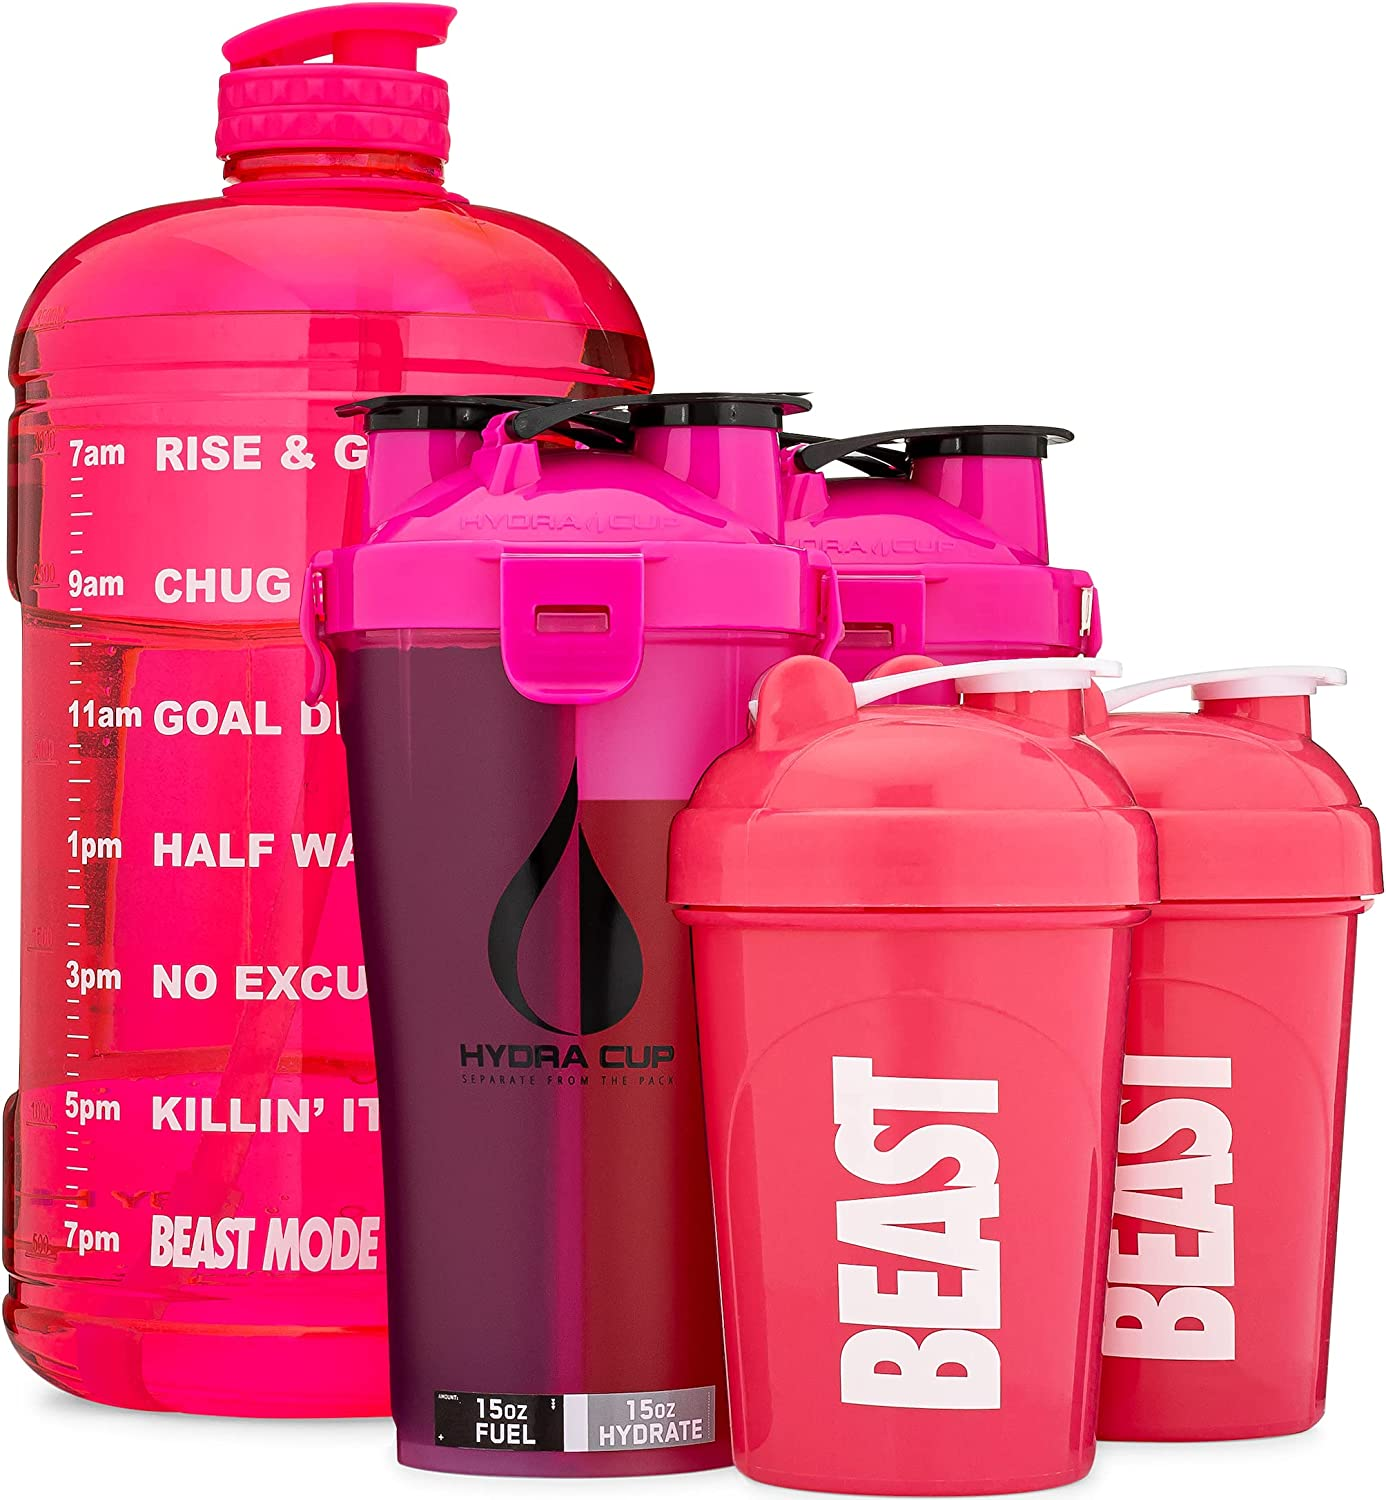 Hydra Cup - [6 Pack] Pink Gallon Jug, Hydra Cup Dual Shakers, OG 20oz Shakers, & Resistance Bands, Combo Blender Pack